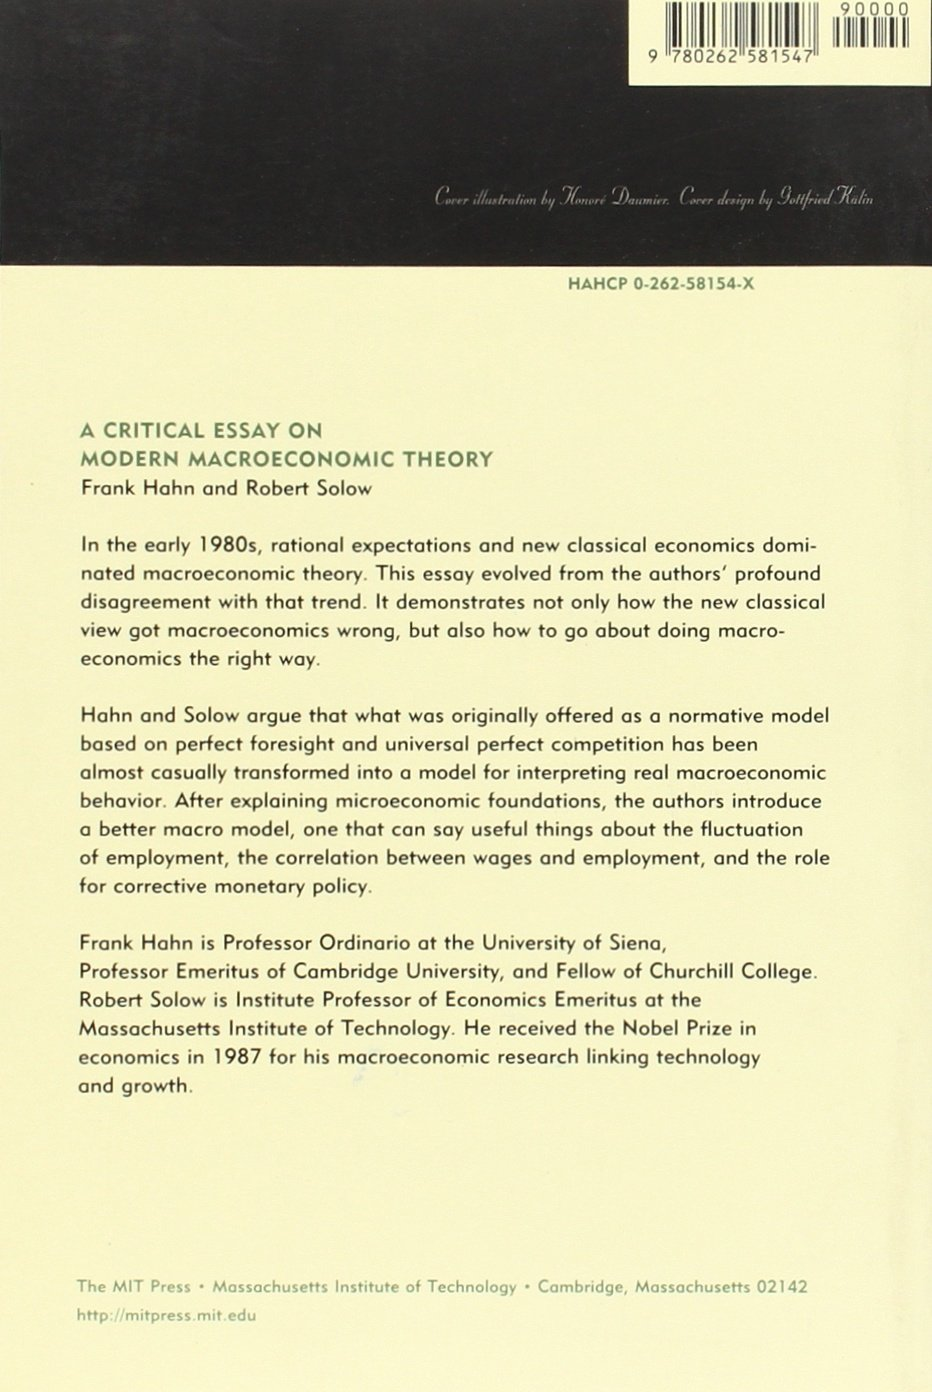 critical essay on modern macroeconomic theory mit press frank critical essay on modern macroeconomic theory mit press frank hahn robert m solow 9780262581547 com books